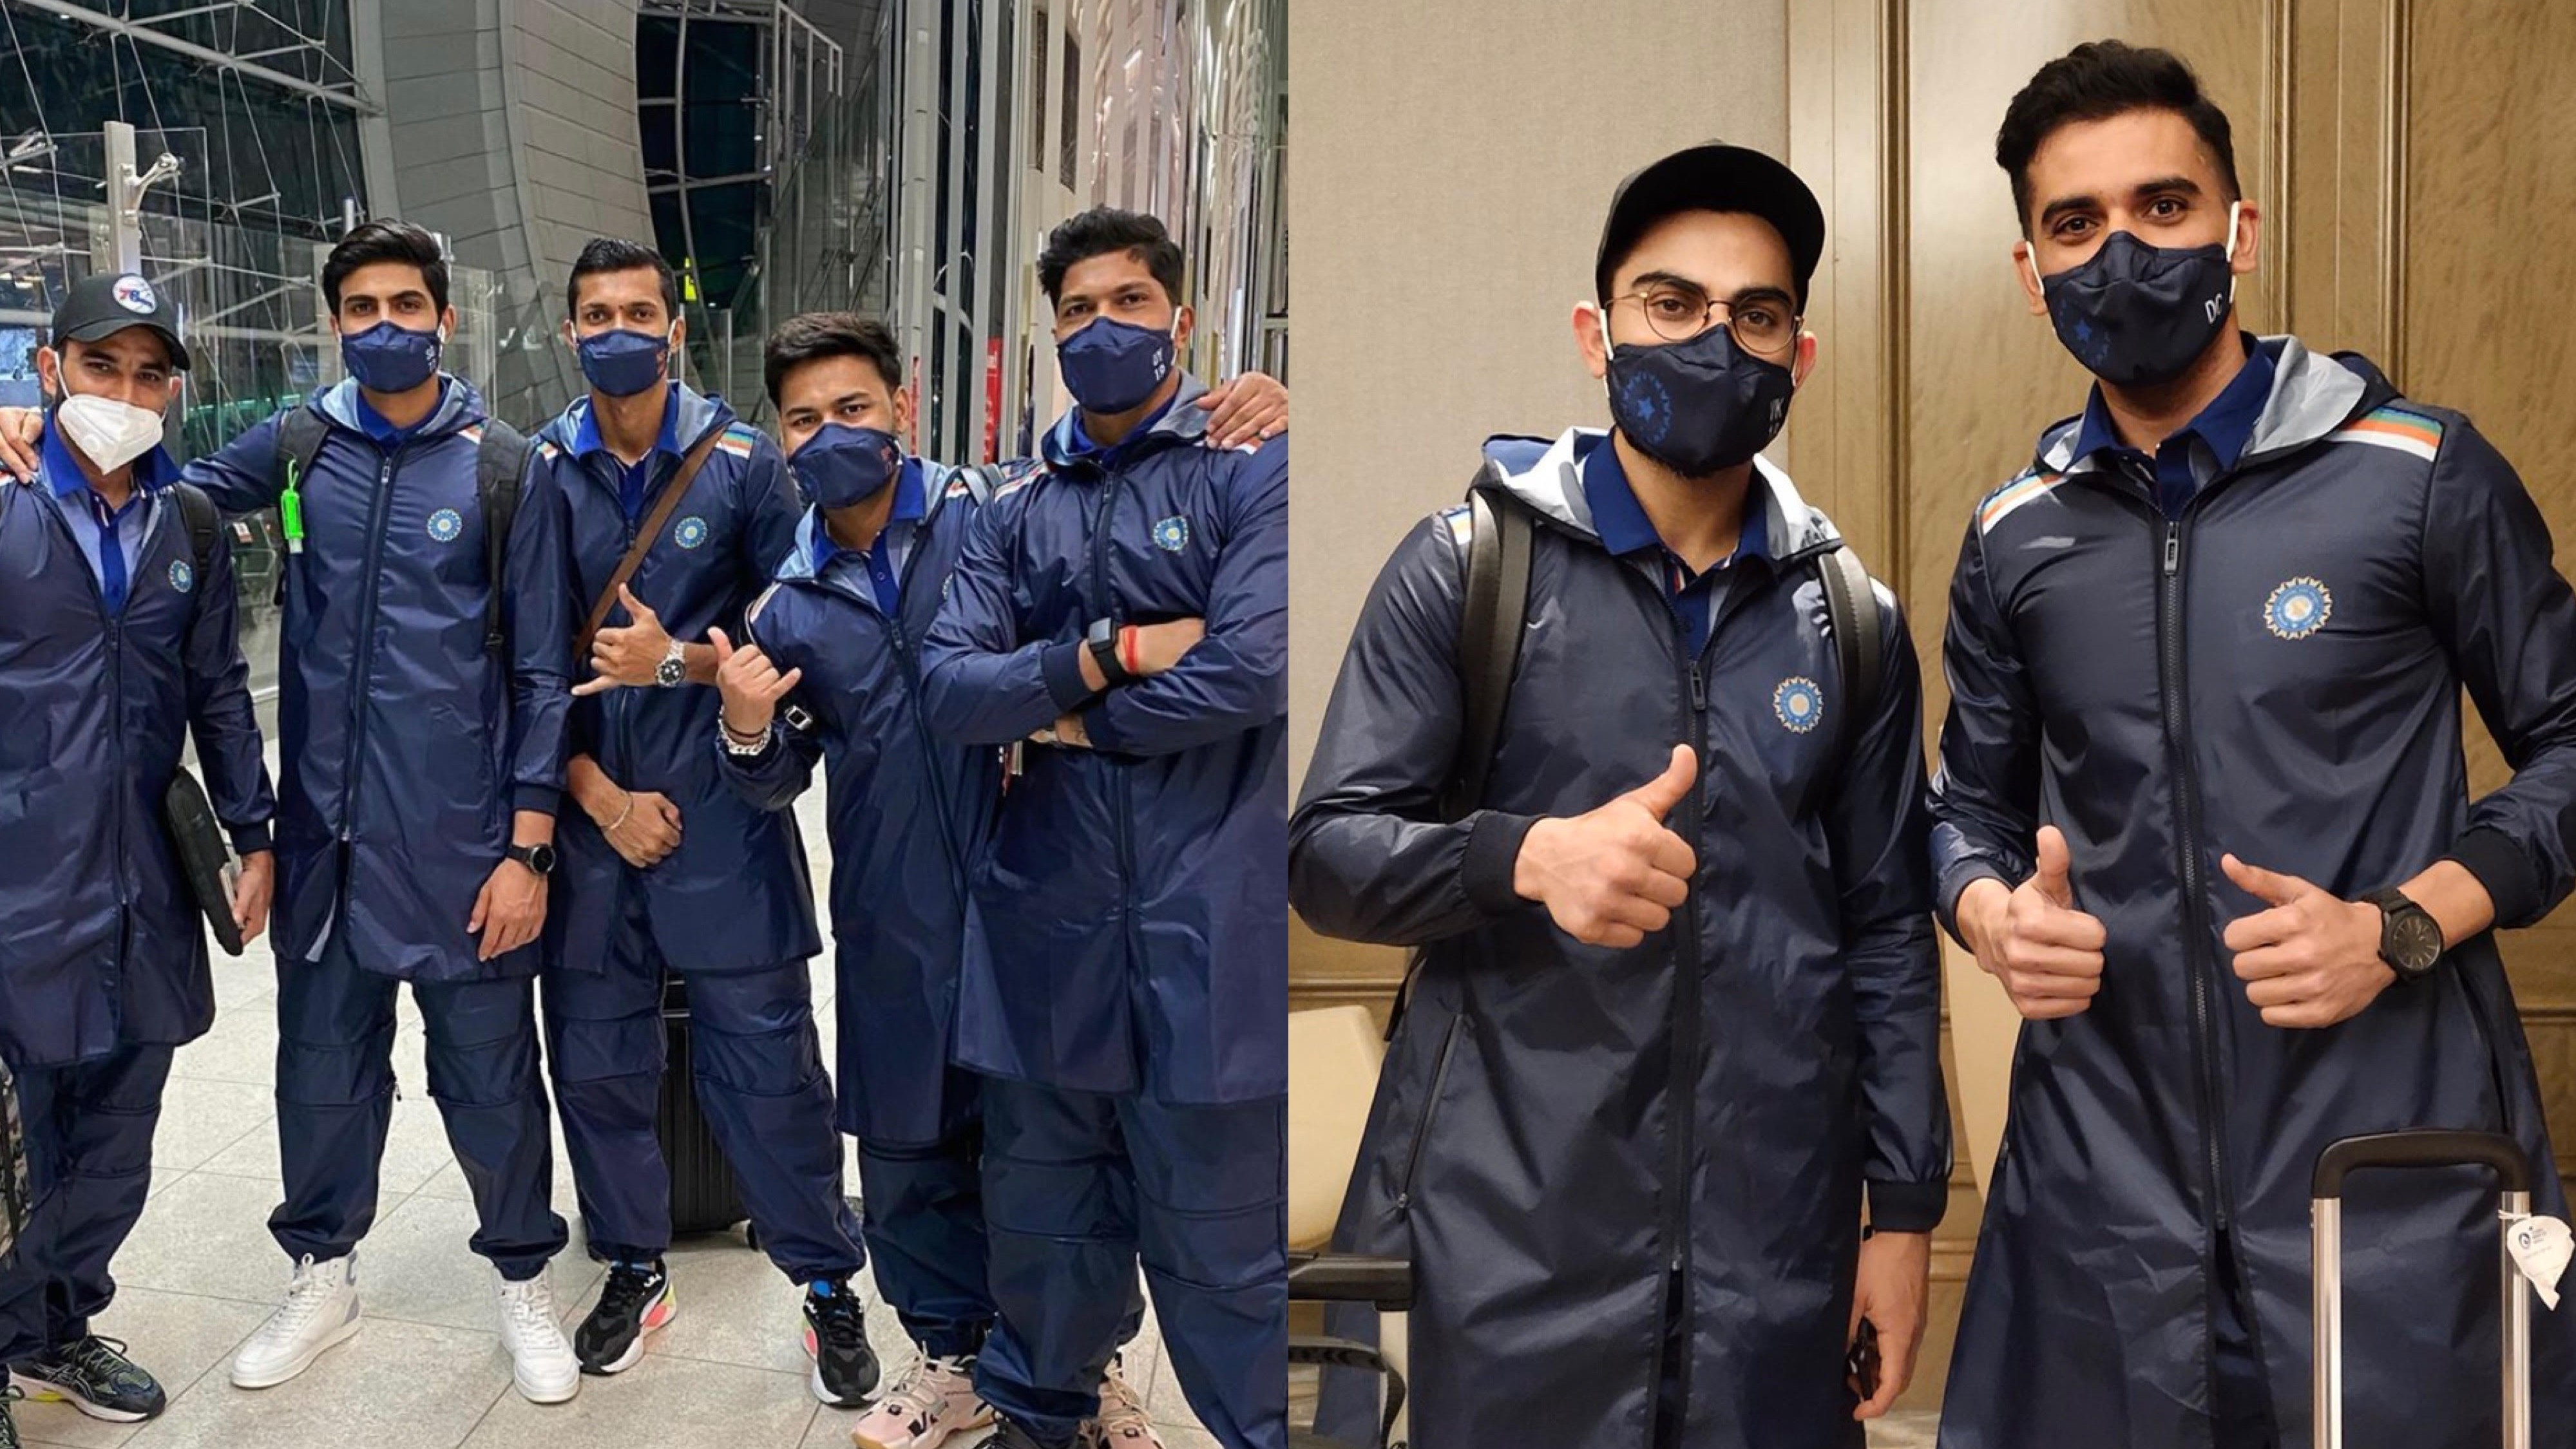 AUS v IND 2020-21: PICS - Team India departs for Australia from Dubai